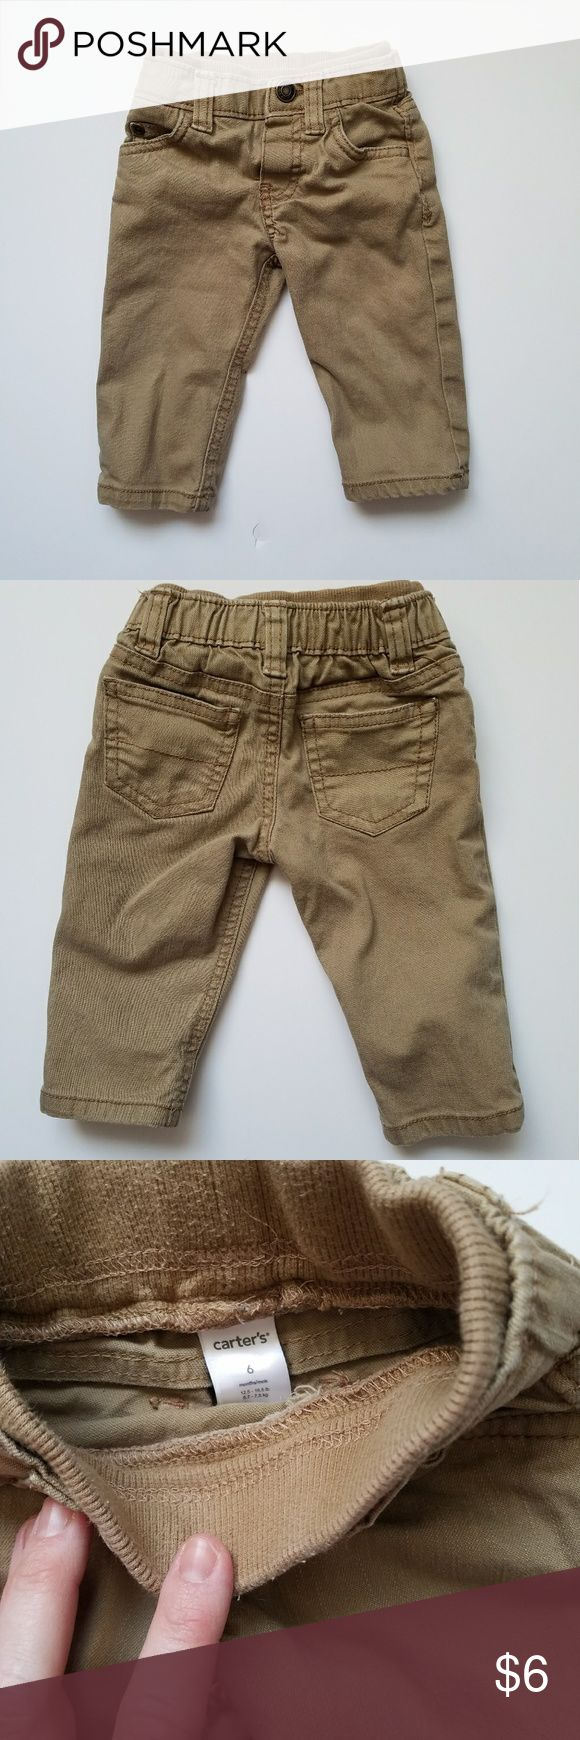 Tan Jeans EUC baby jeans with soft stretchy waist. Carter's Bottoms Jeans